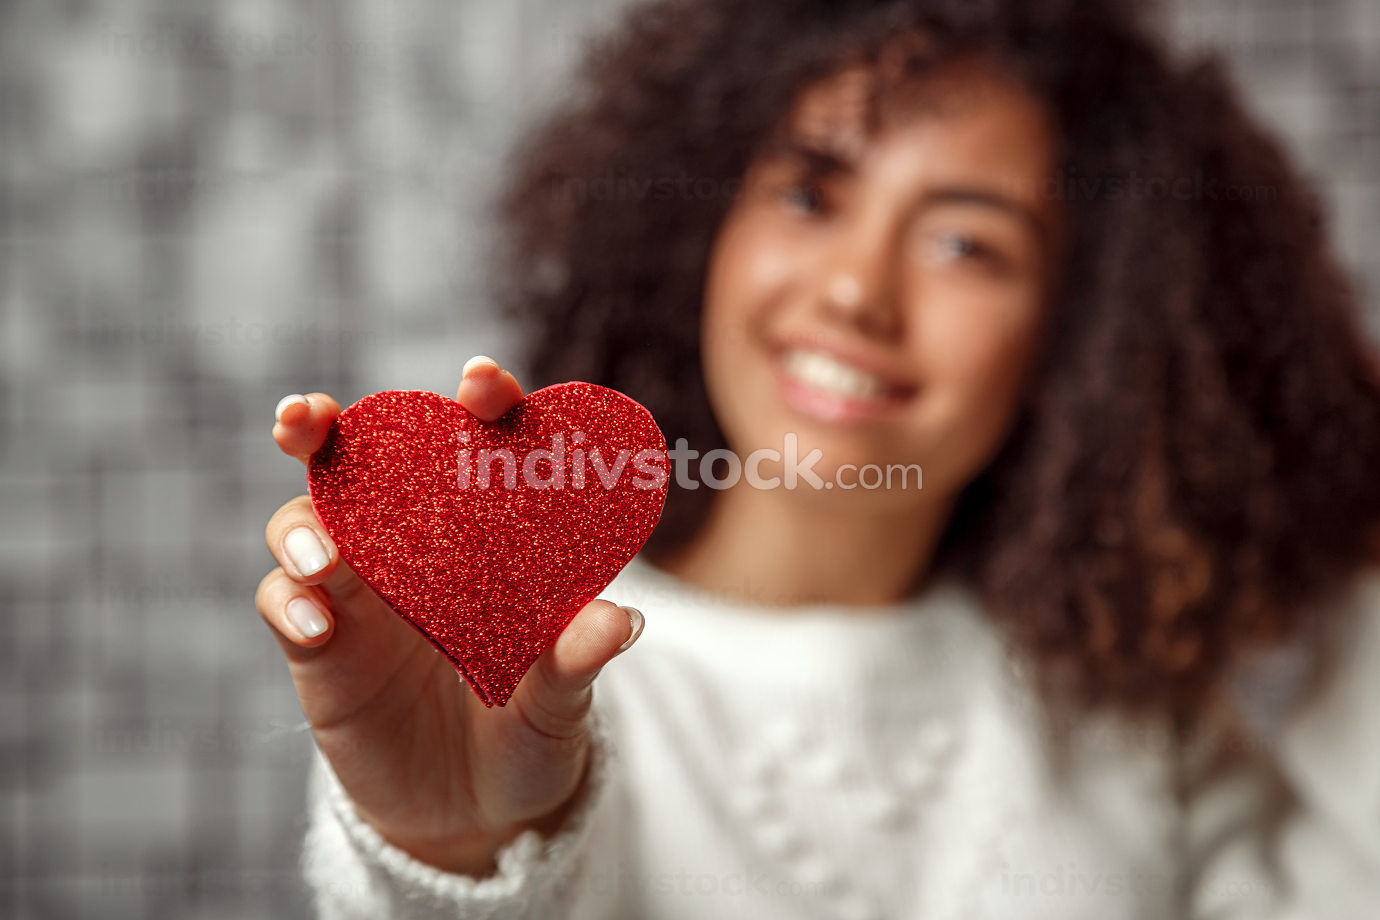 a paper red heart in  hands of a young African American curly-haired girl. focus on the heart, shallow depth of focus